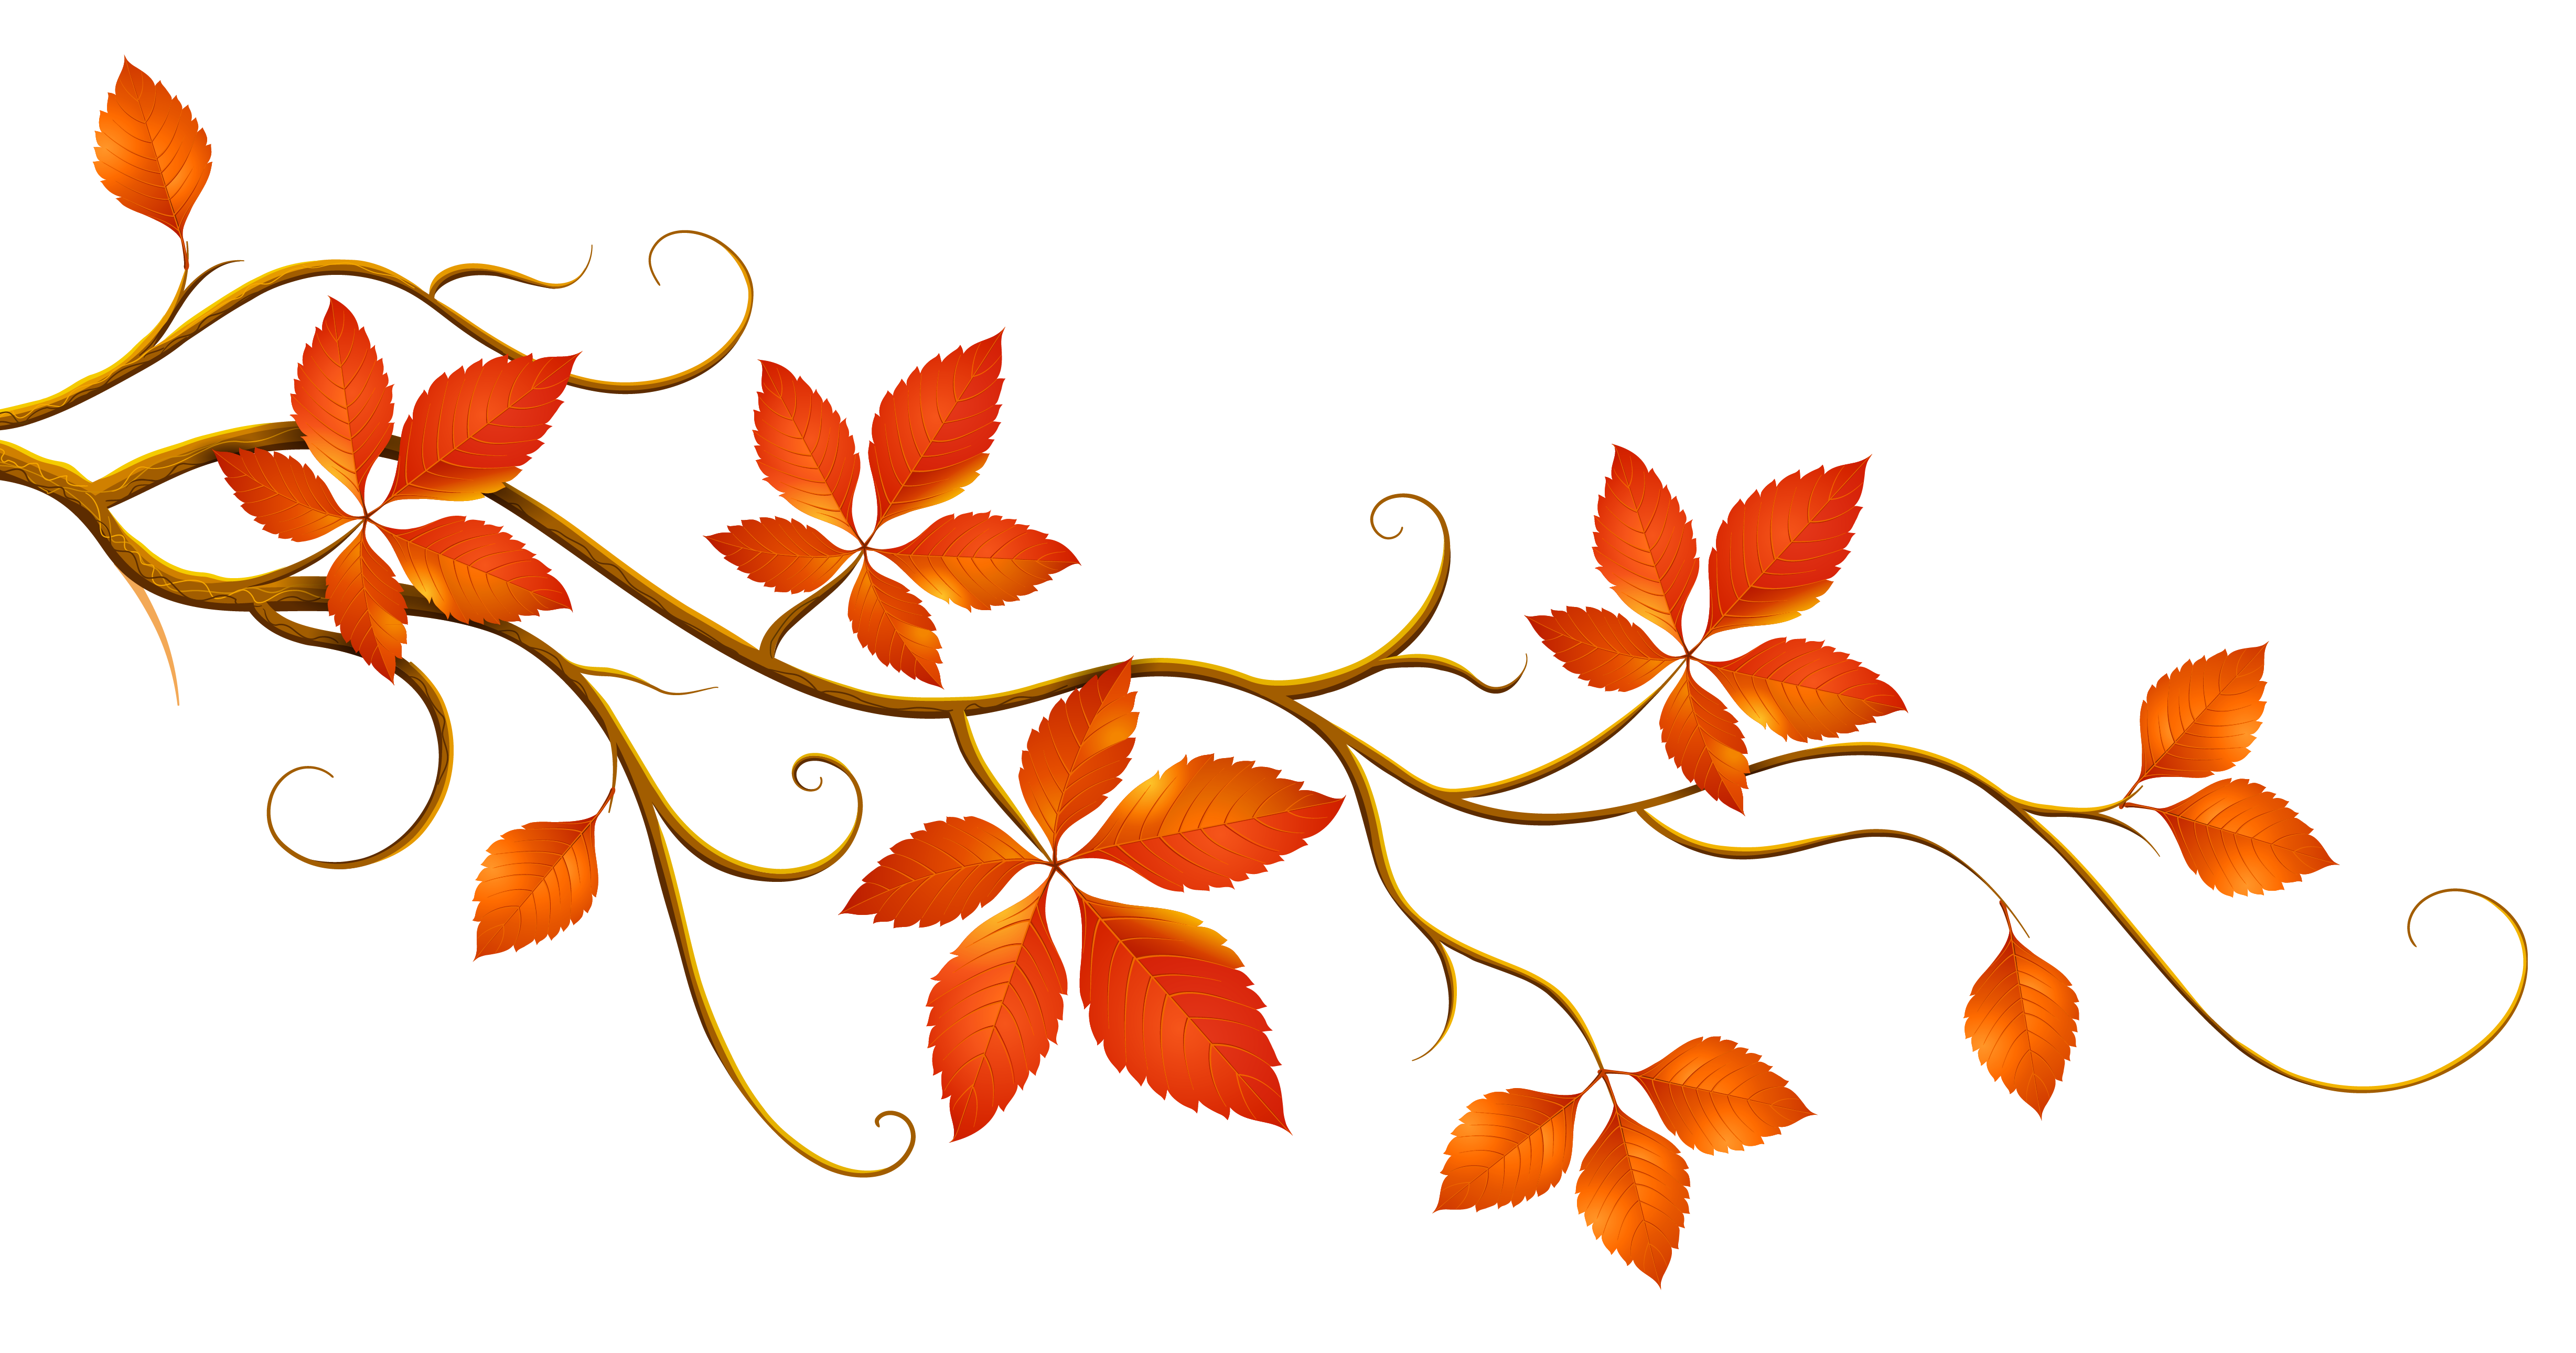 Falling autumn leaves clipart.